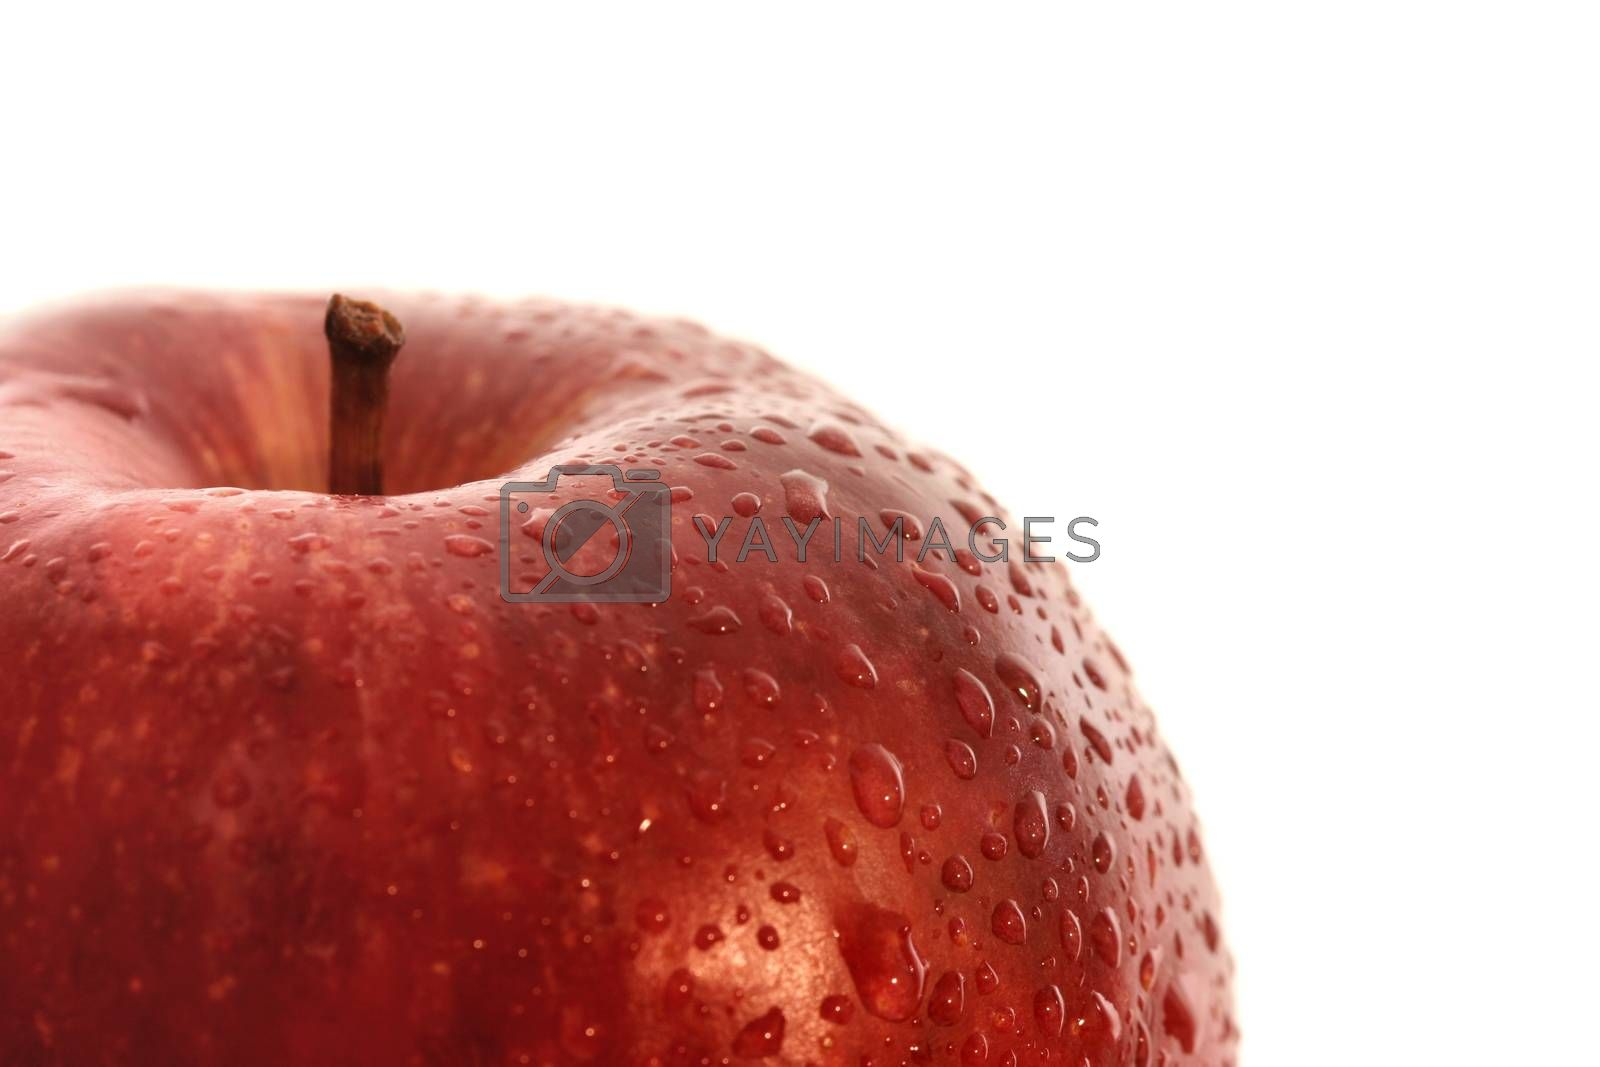 Macro image of a red apple